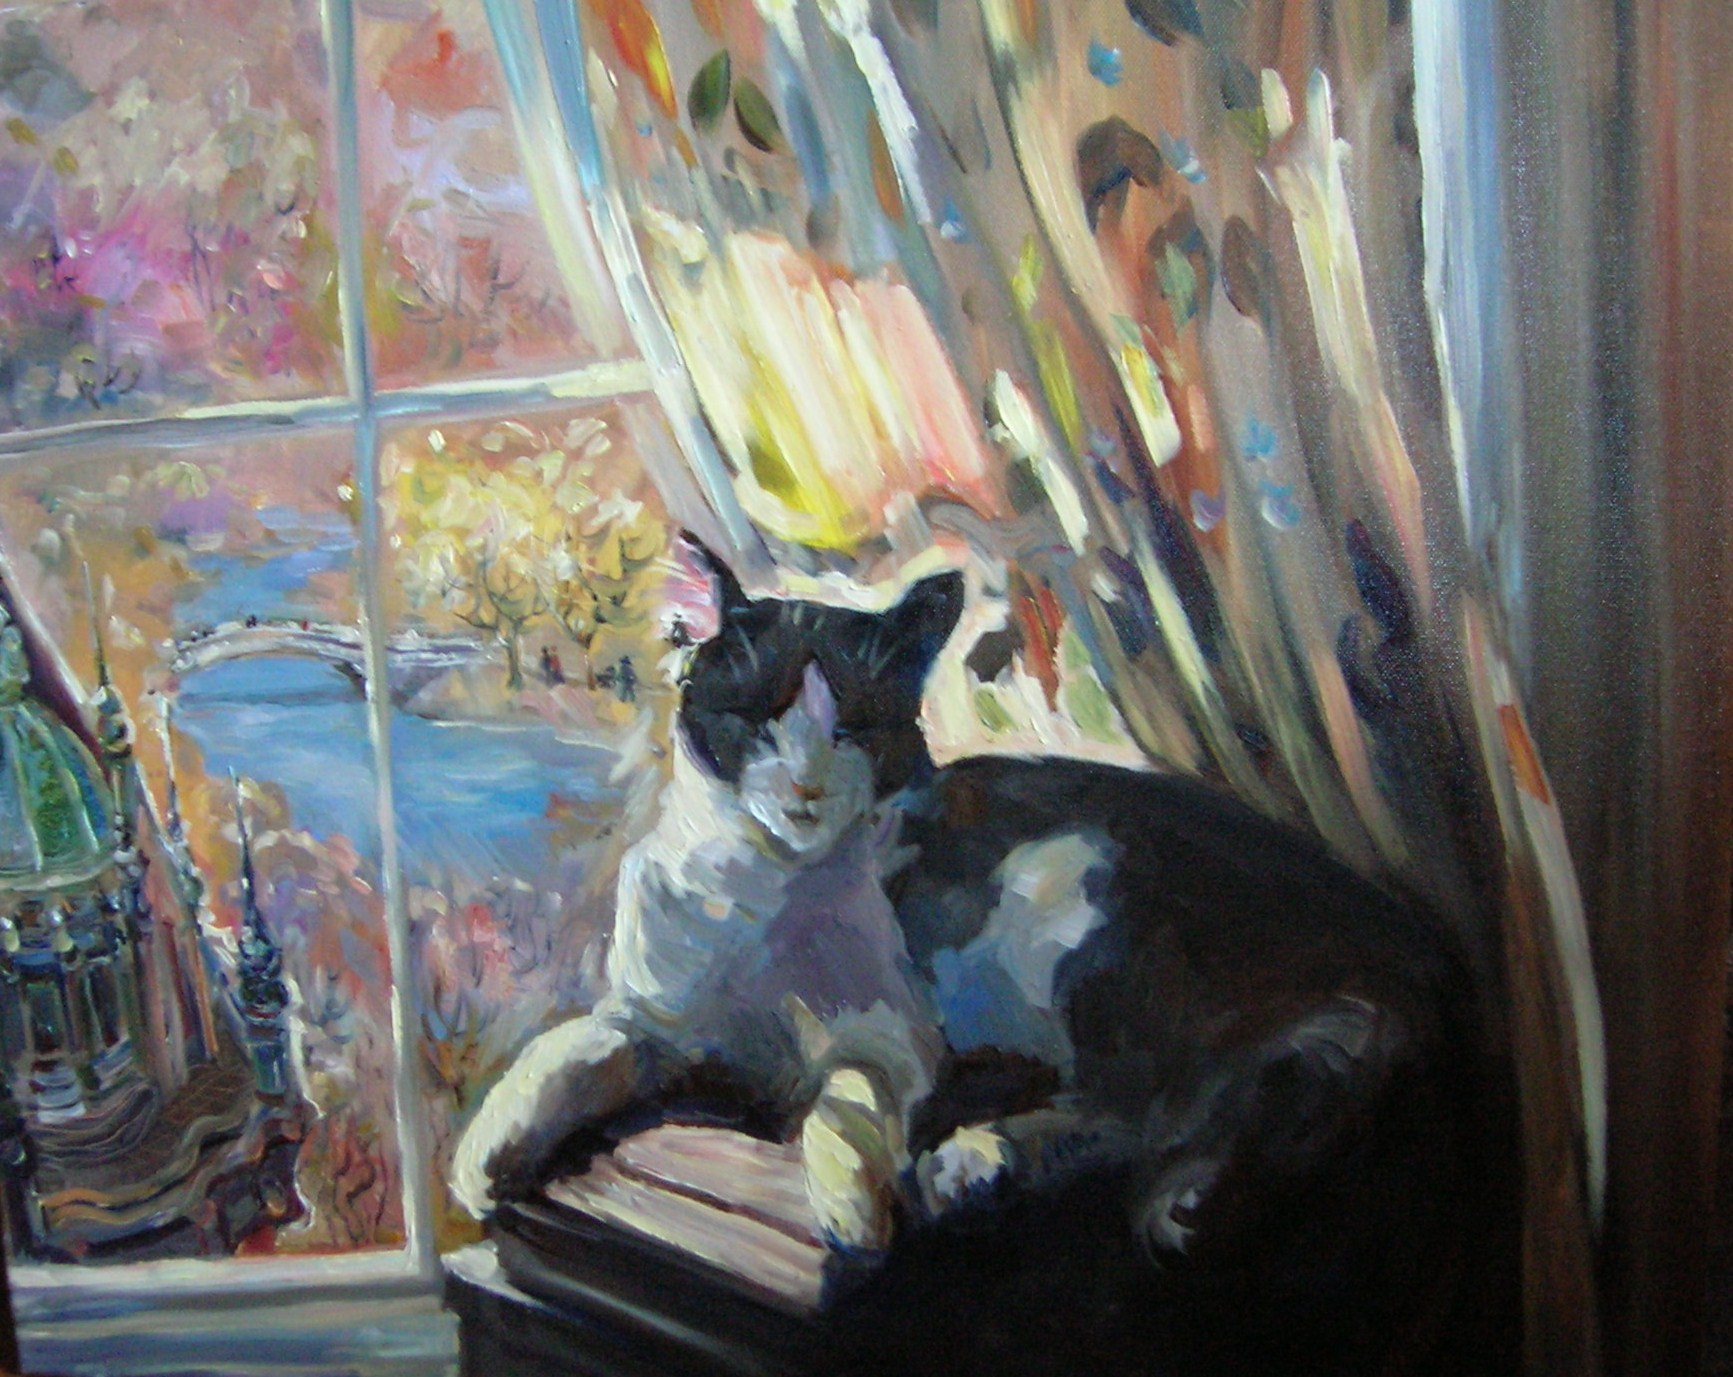 The Cat by Tatiana Rhinevault - Click for Details